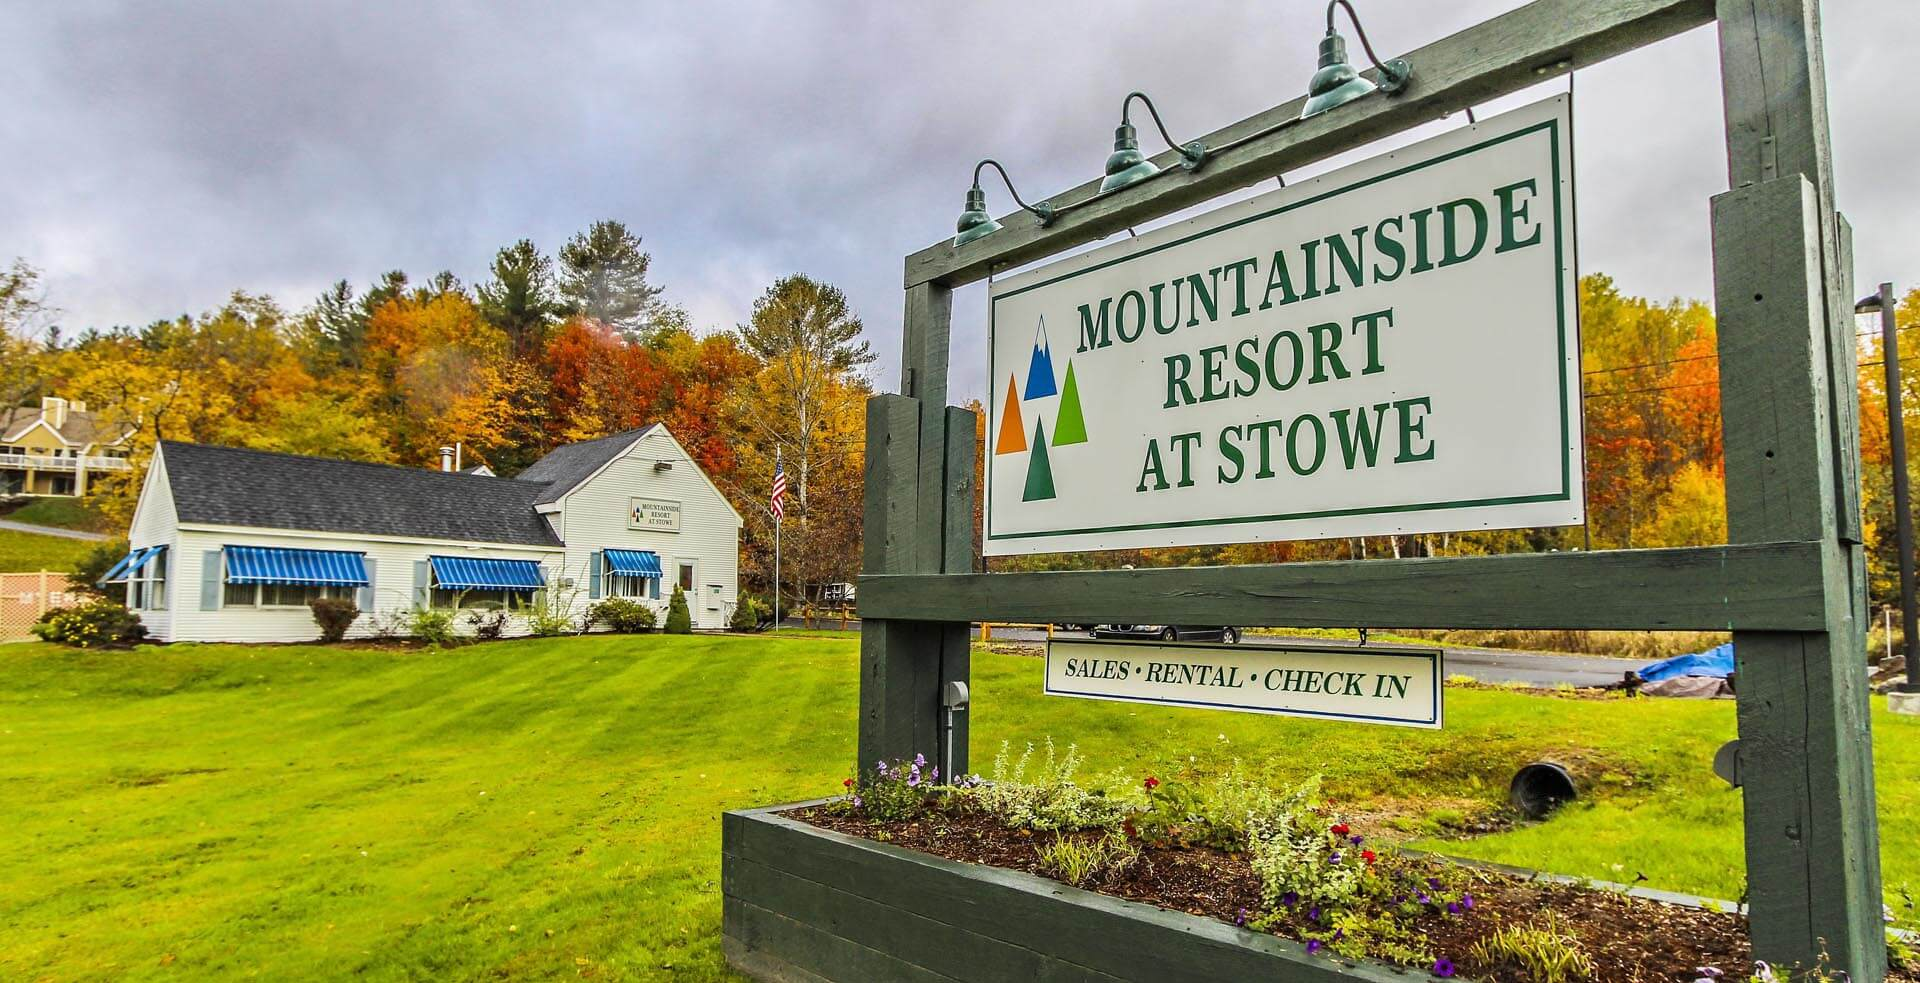 Mountainside Resort At Stowe Signage